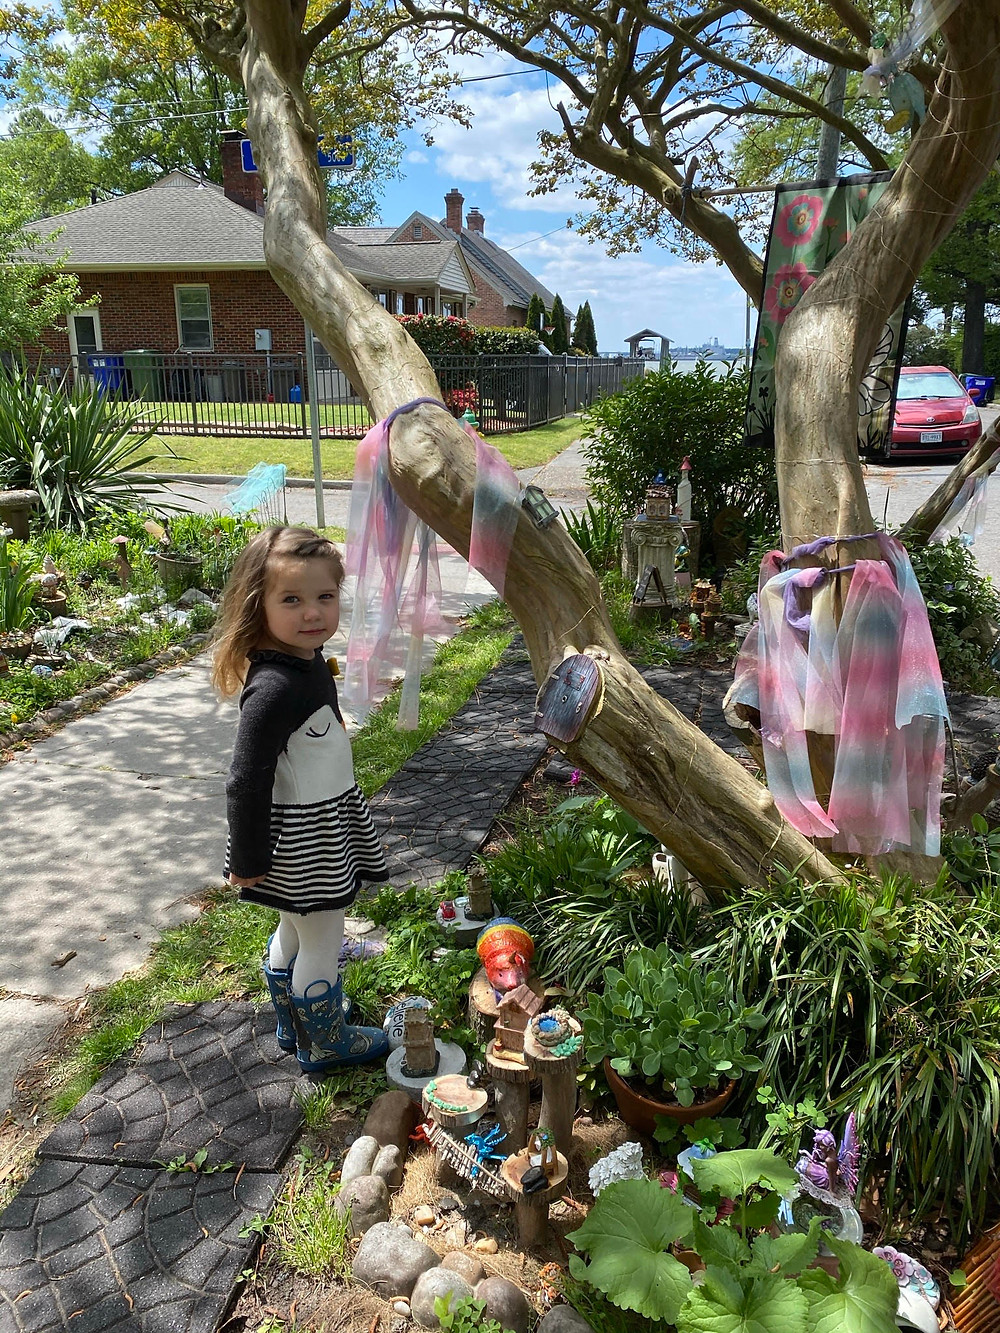 A young child looks back at the camera from their position exploring near the fairy tree, a twisty tree with various fairy and gnome statues, some ribbons and scarves, and a door into the trunk by one of the knots.